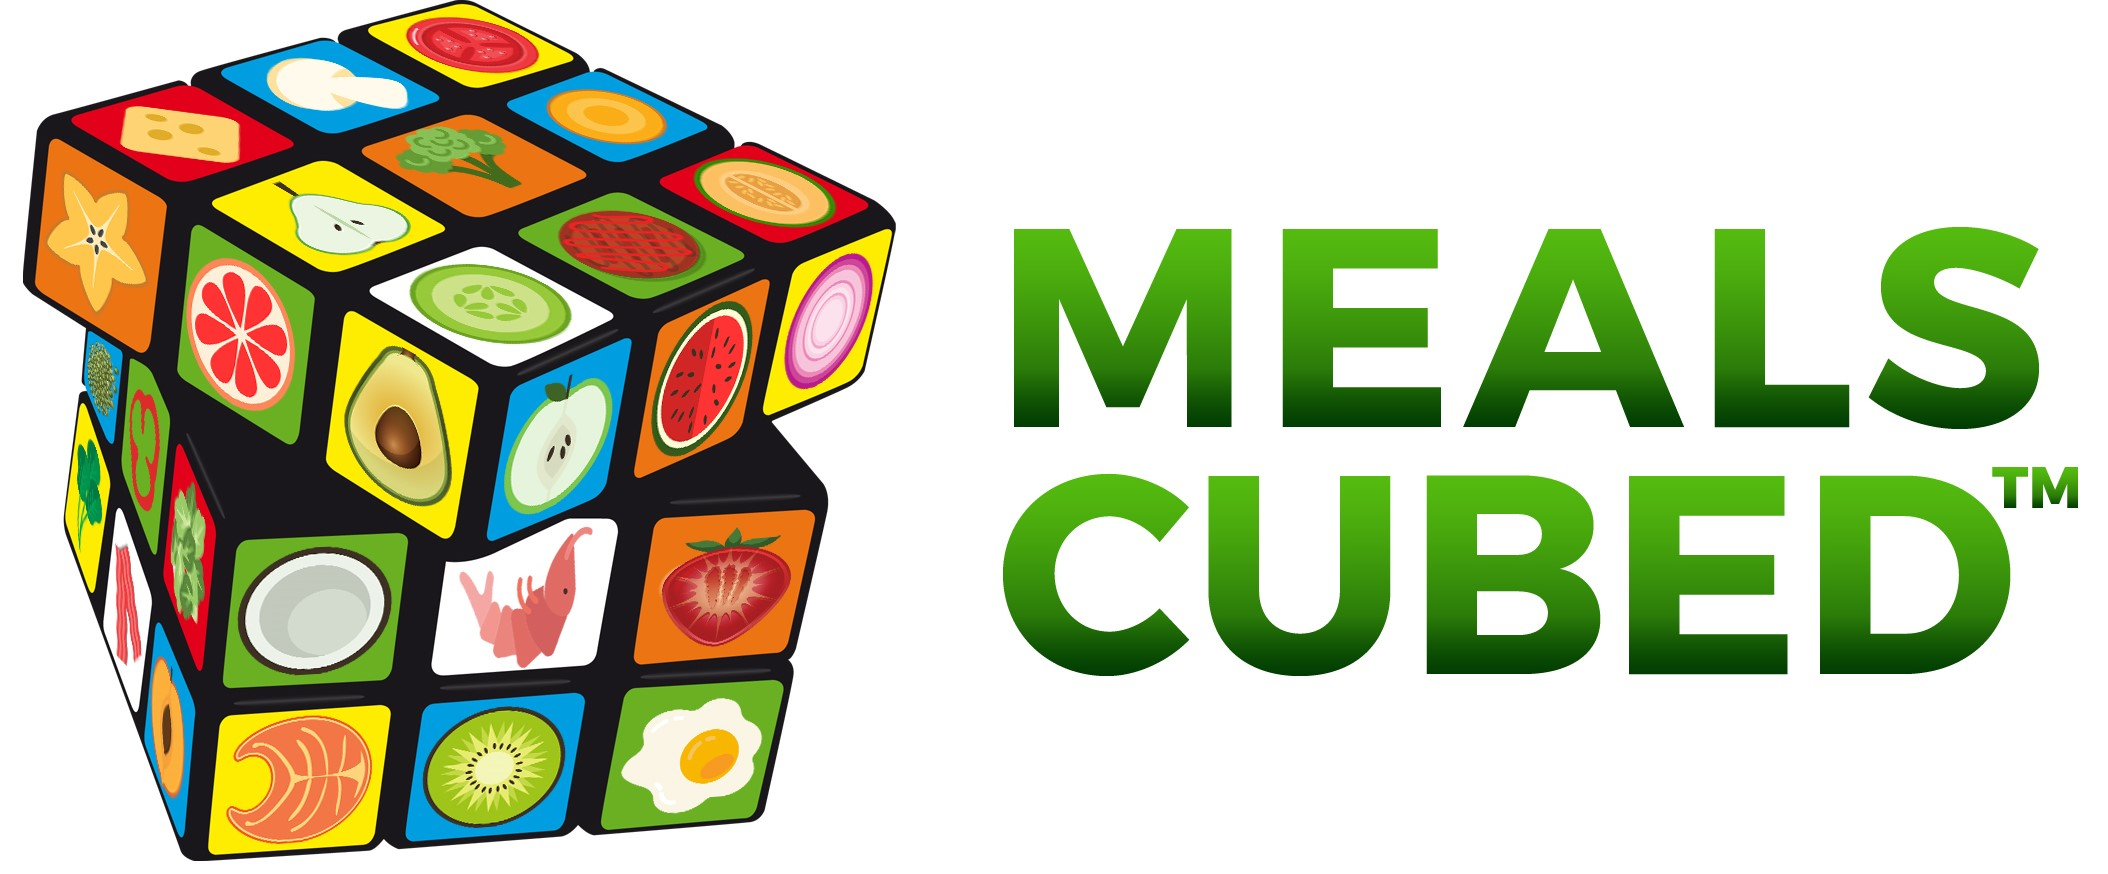 Meals Cubed - Cook Once Eat Thrice